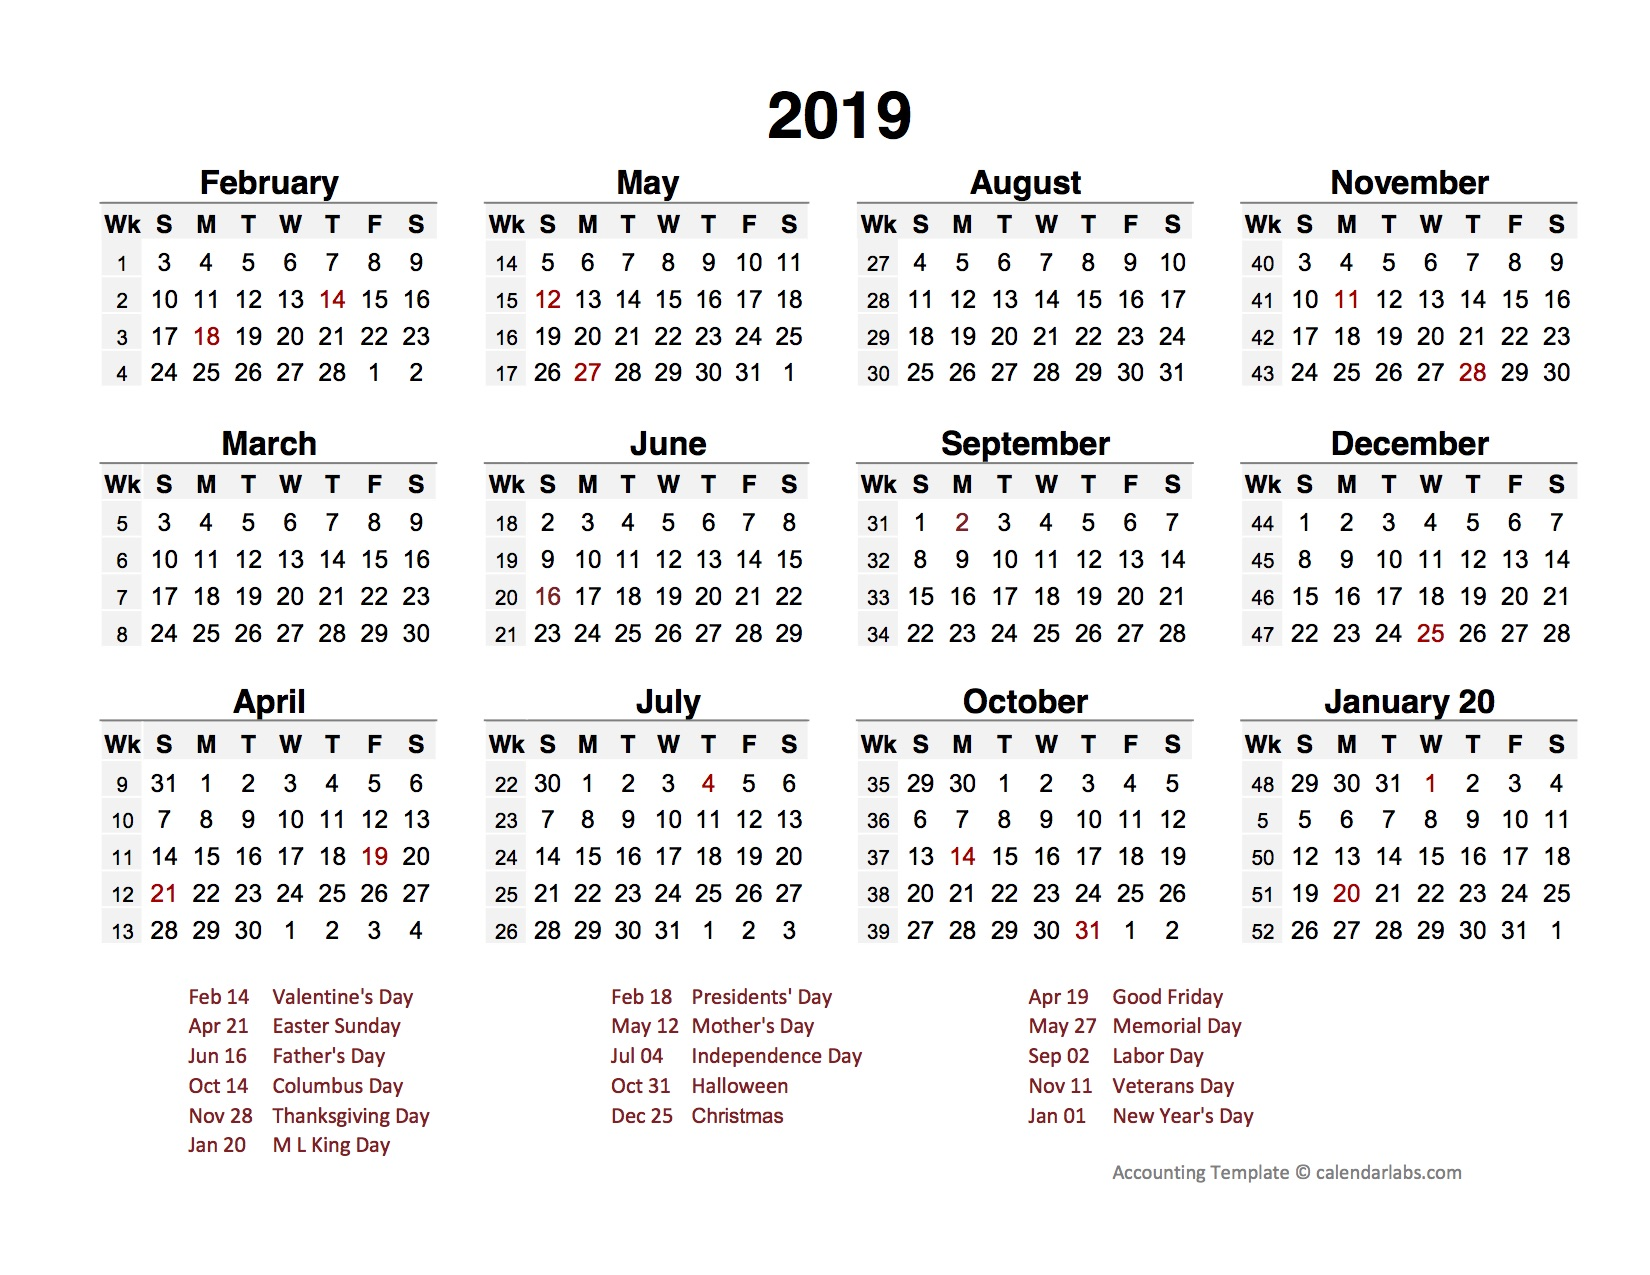 2019 Accounting Period Calendar 4-4-5 - Free Printable ...